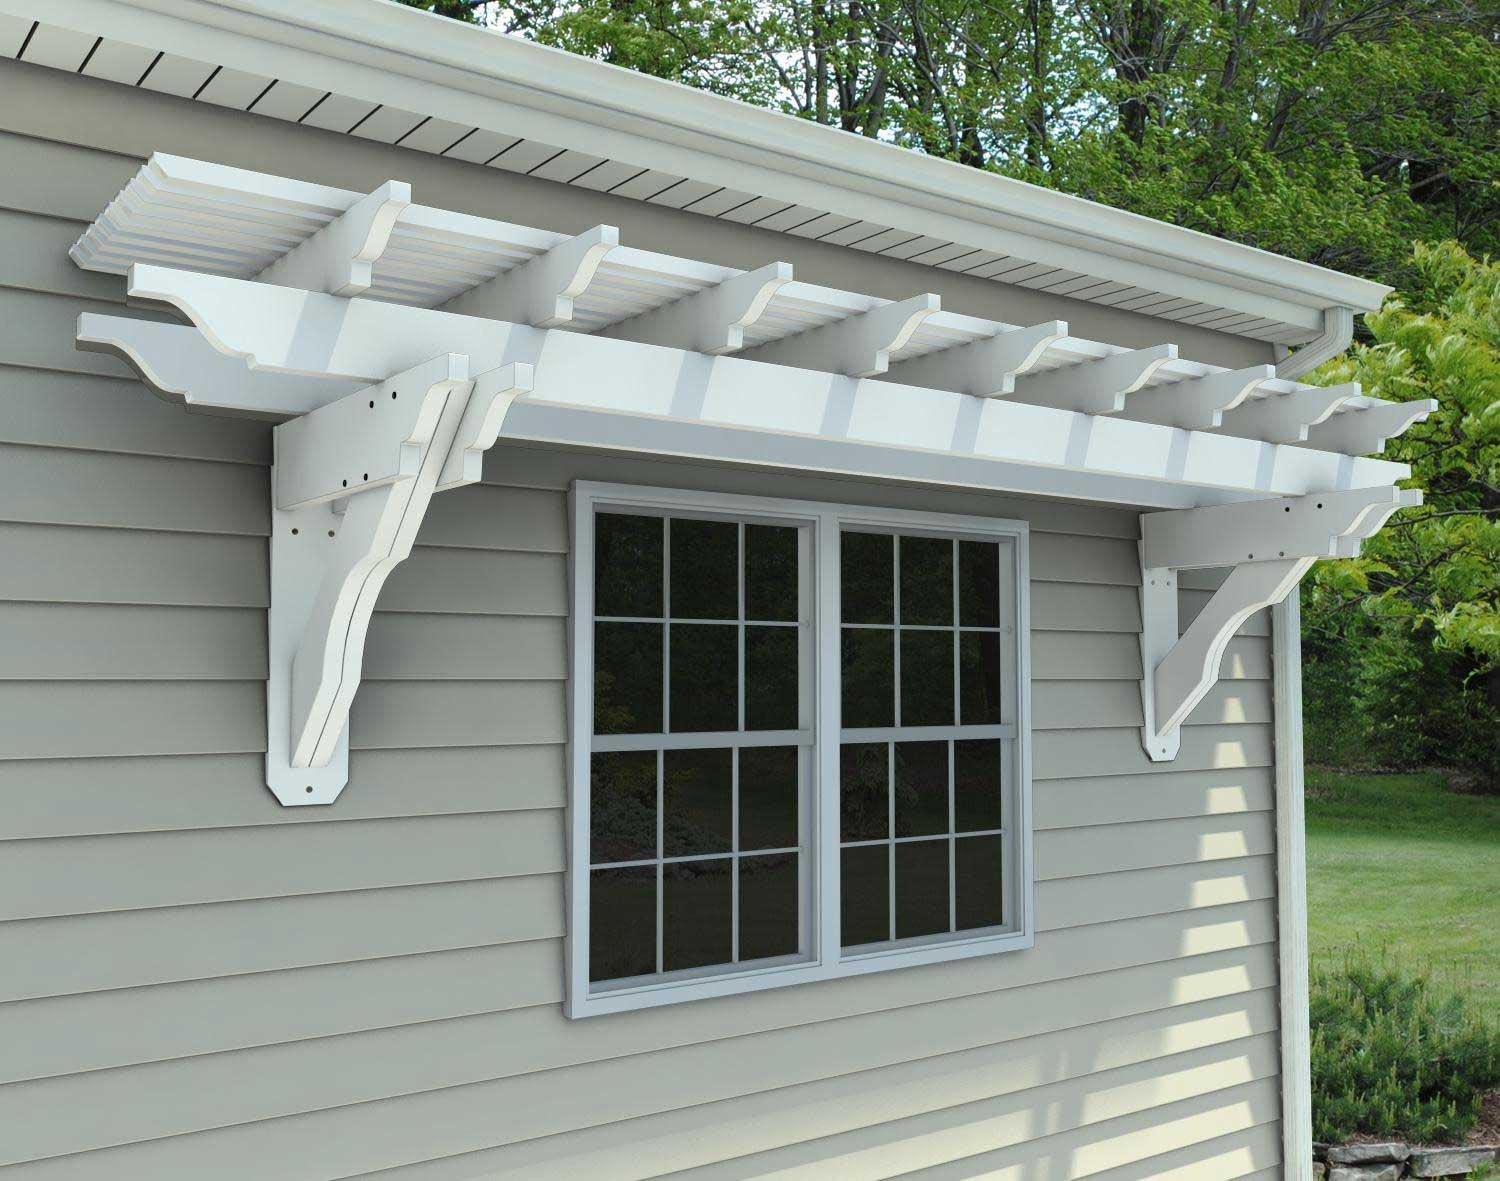 Simple Pergola Attached To House Vinyl Attached Pergola Kits Pergola Design Ideas